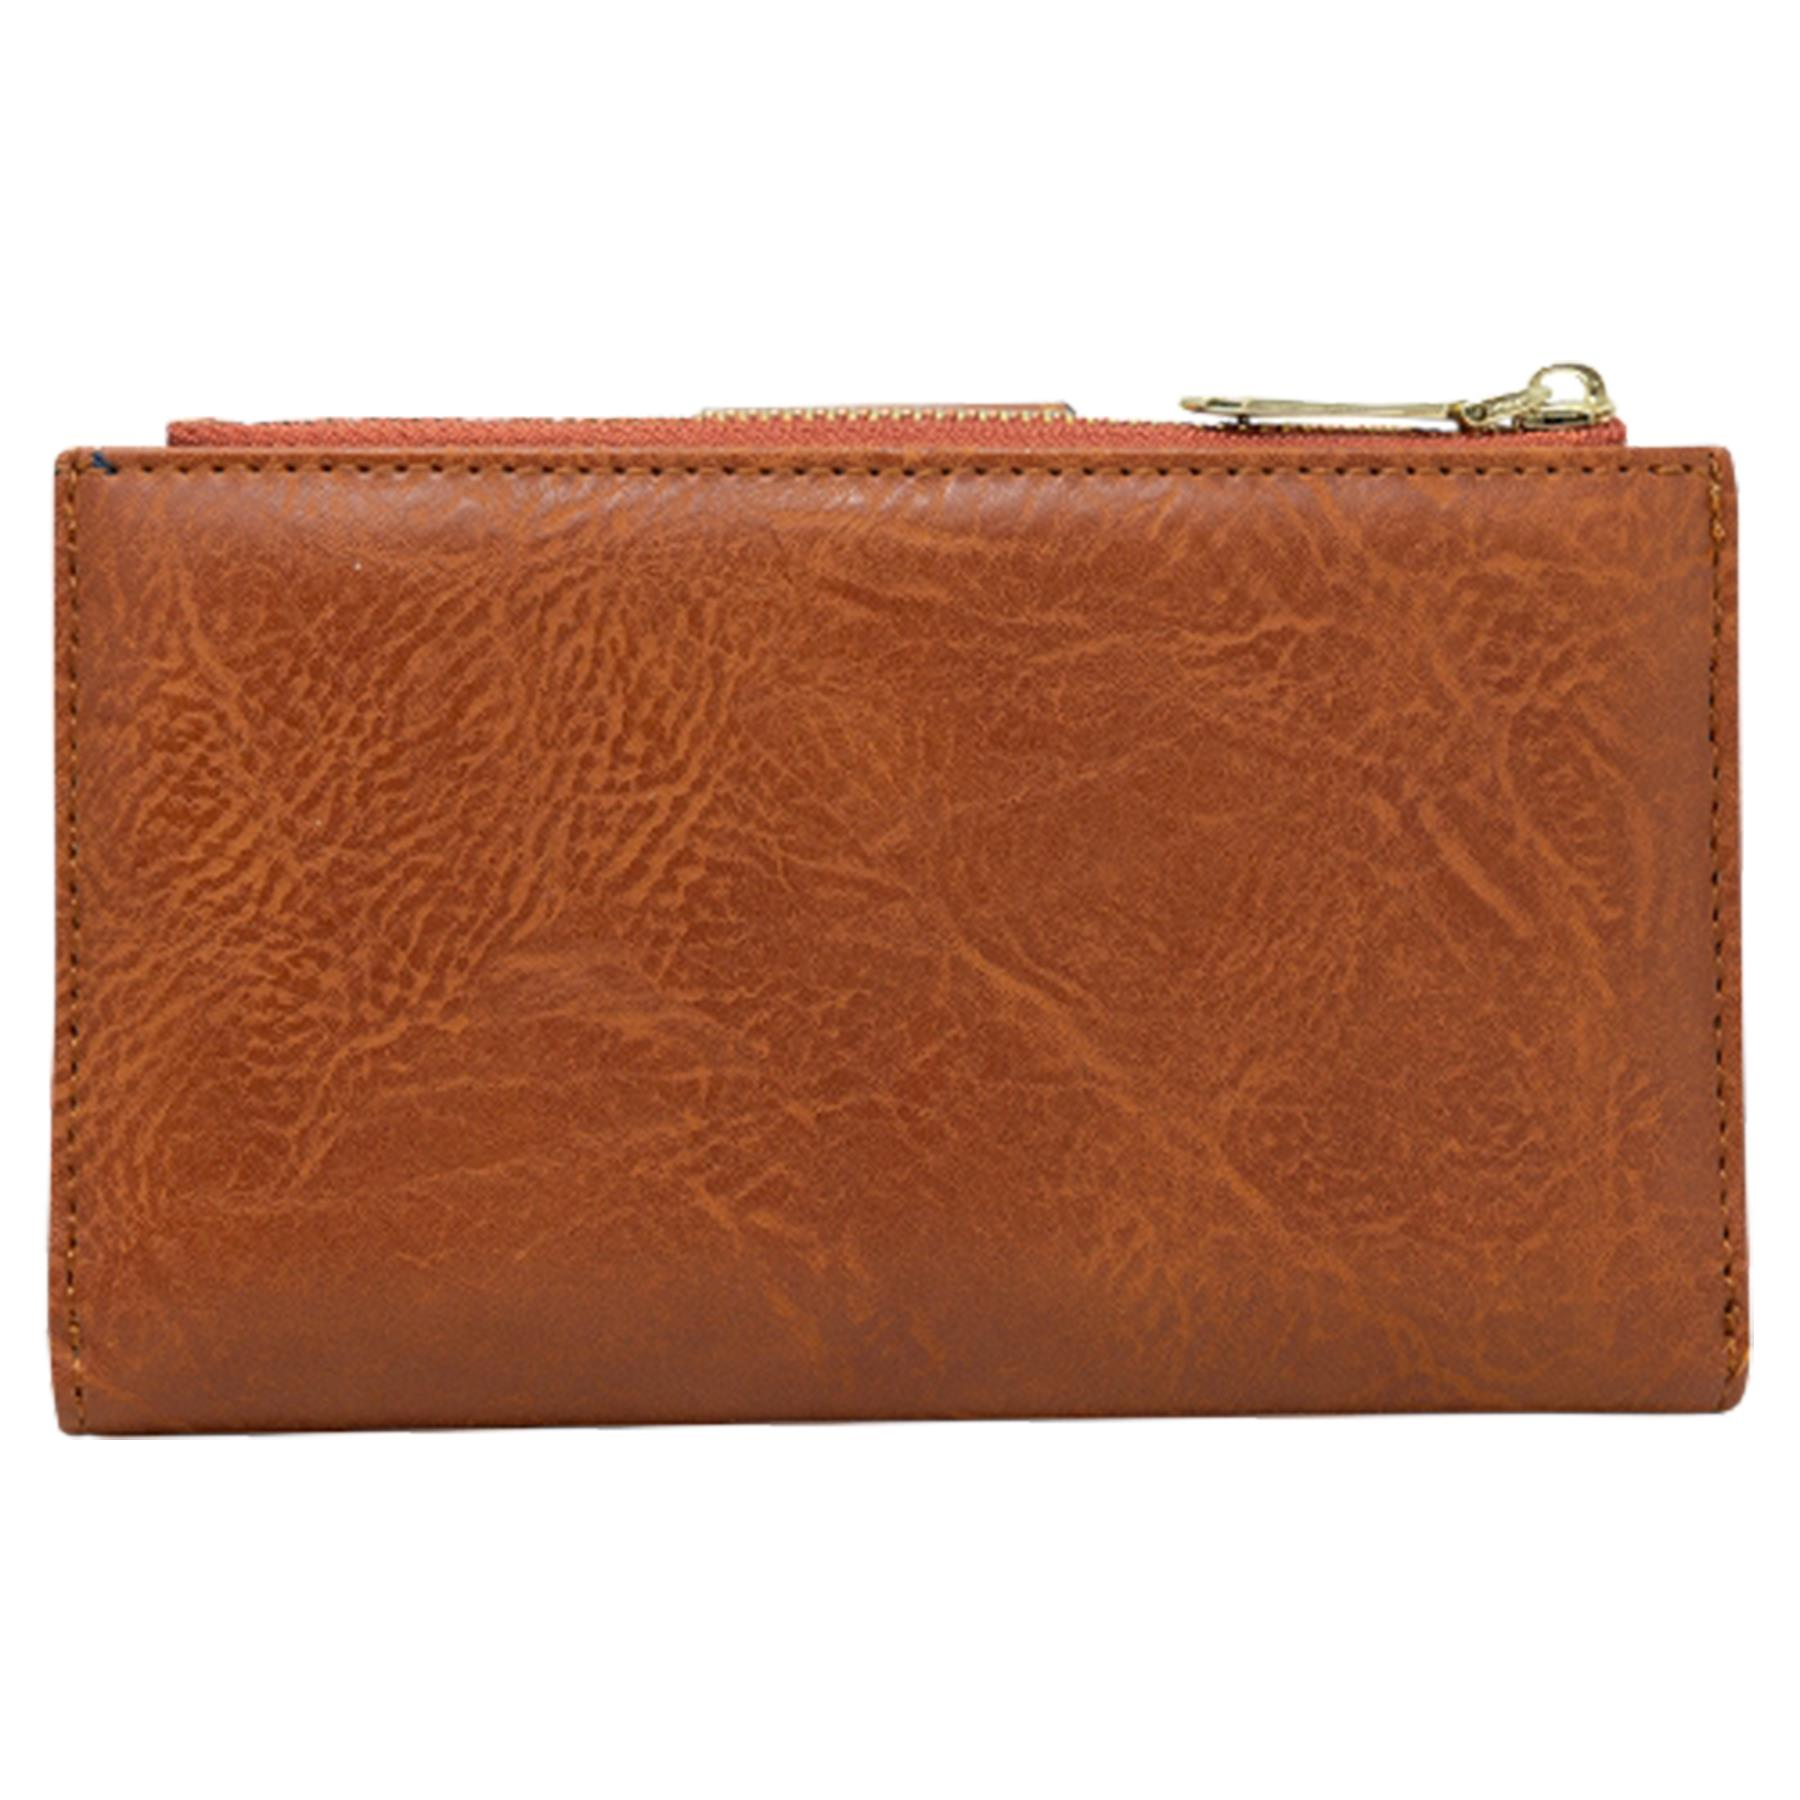 New-Soft-Plain-Synthetic-Leather-Card-Organiser-Ladies-Long-Purse thumbnail 12